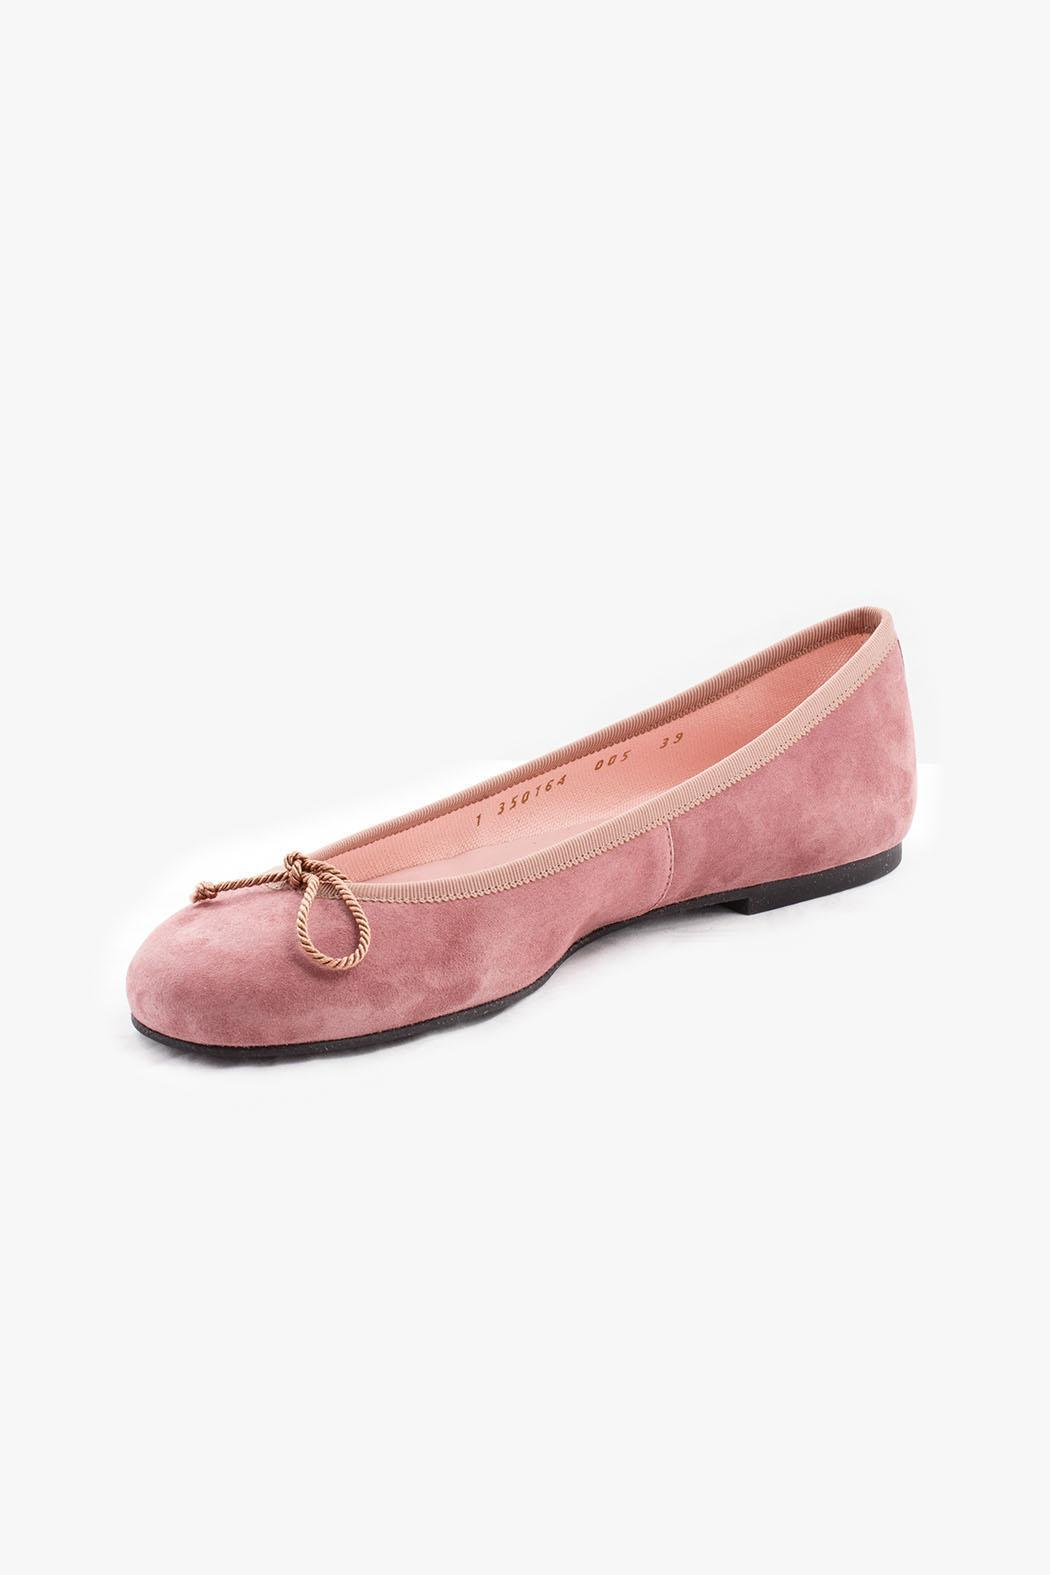 superior quality order online best quality Rosario Ballerina Flats